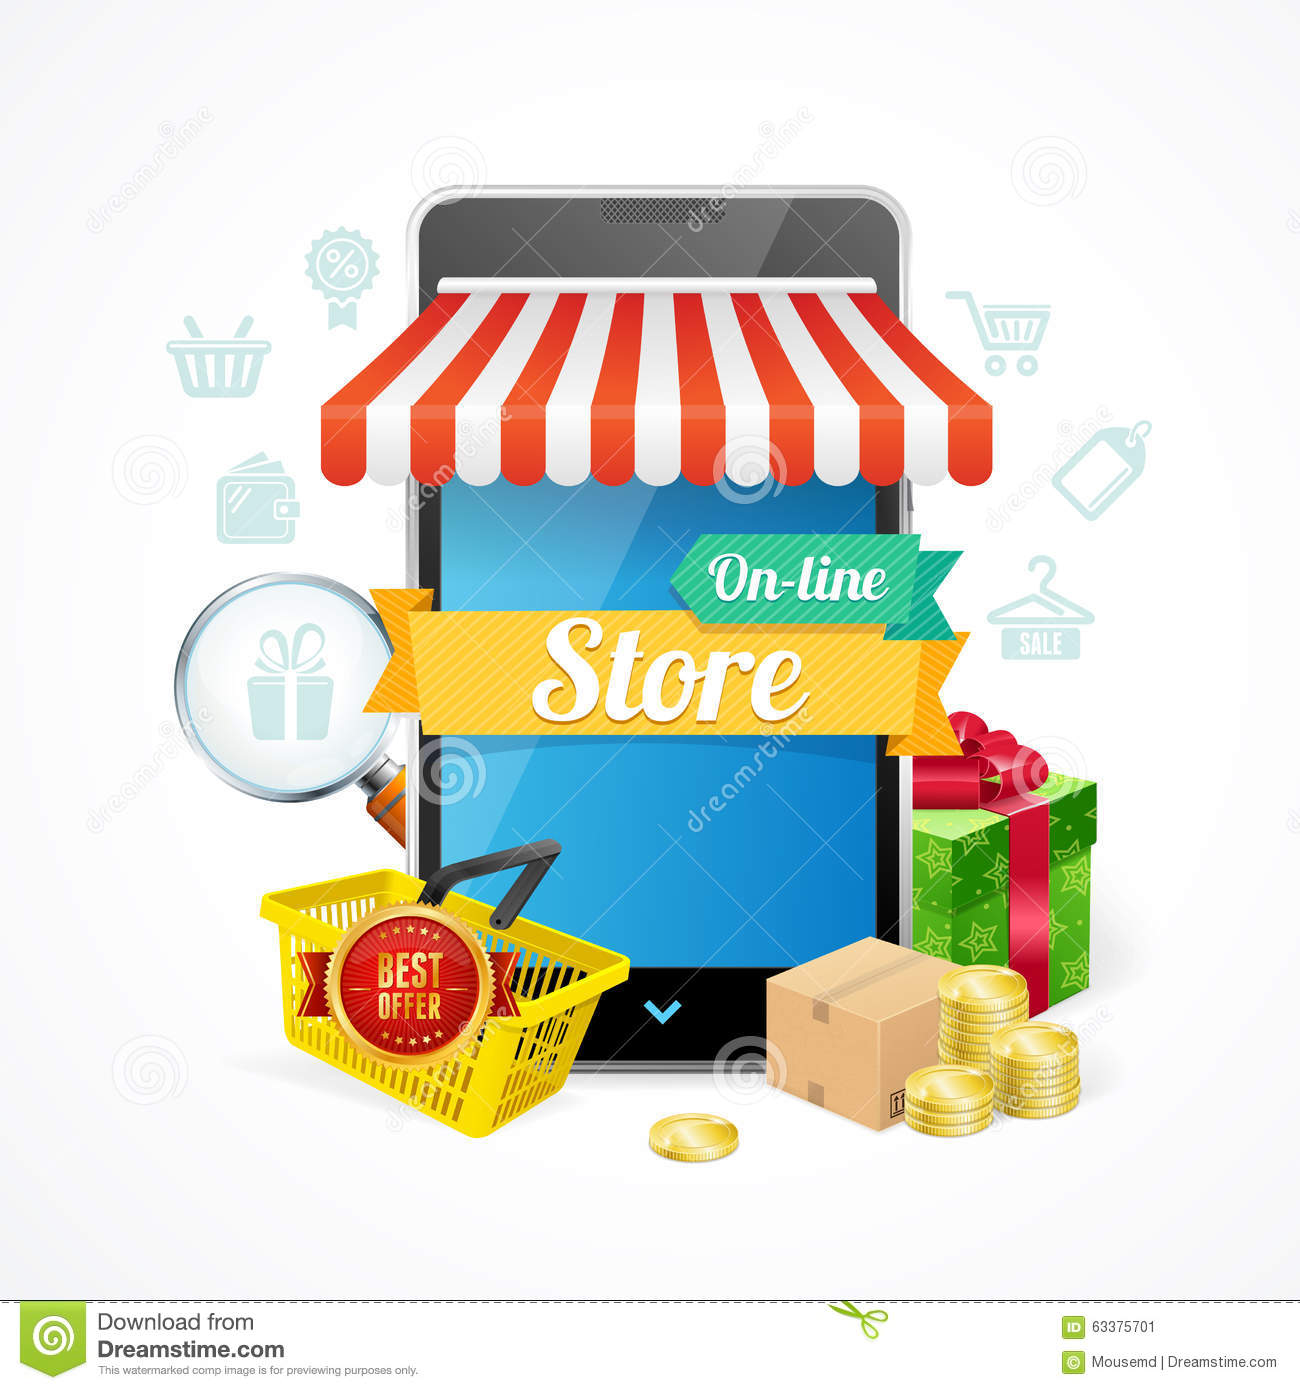 Mobile phone online store in malaysia 4d